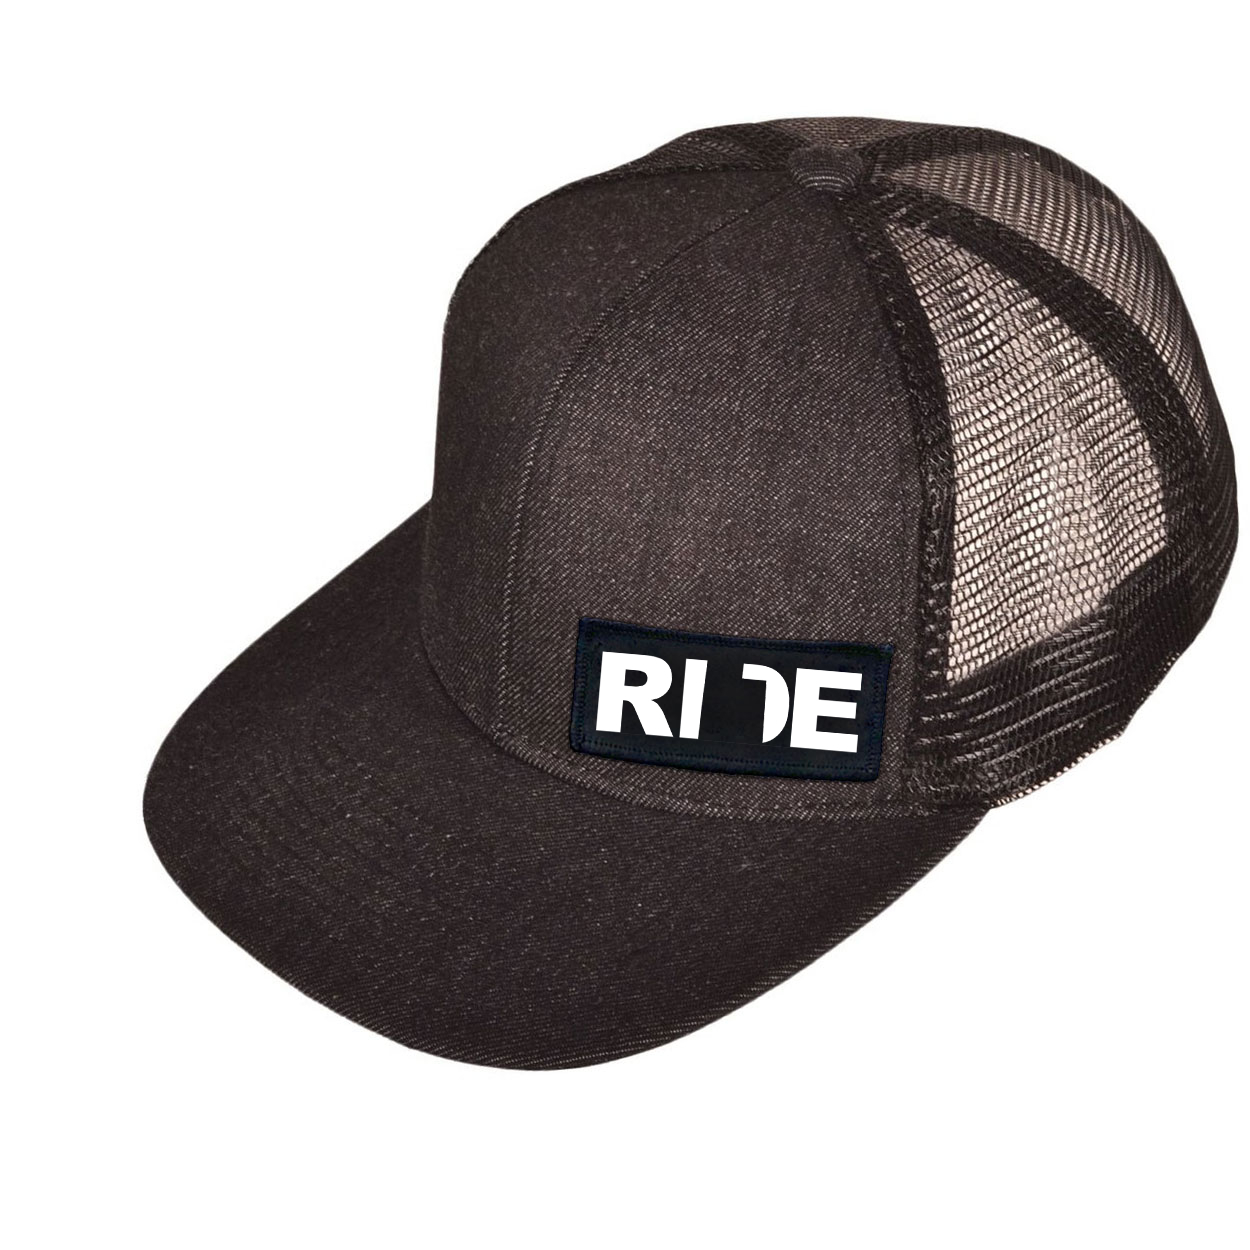 Ride Utah Night Out Woven Patch Snapback Flat Brim Hat Black Denim (White Logo)